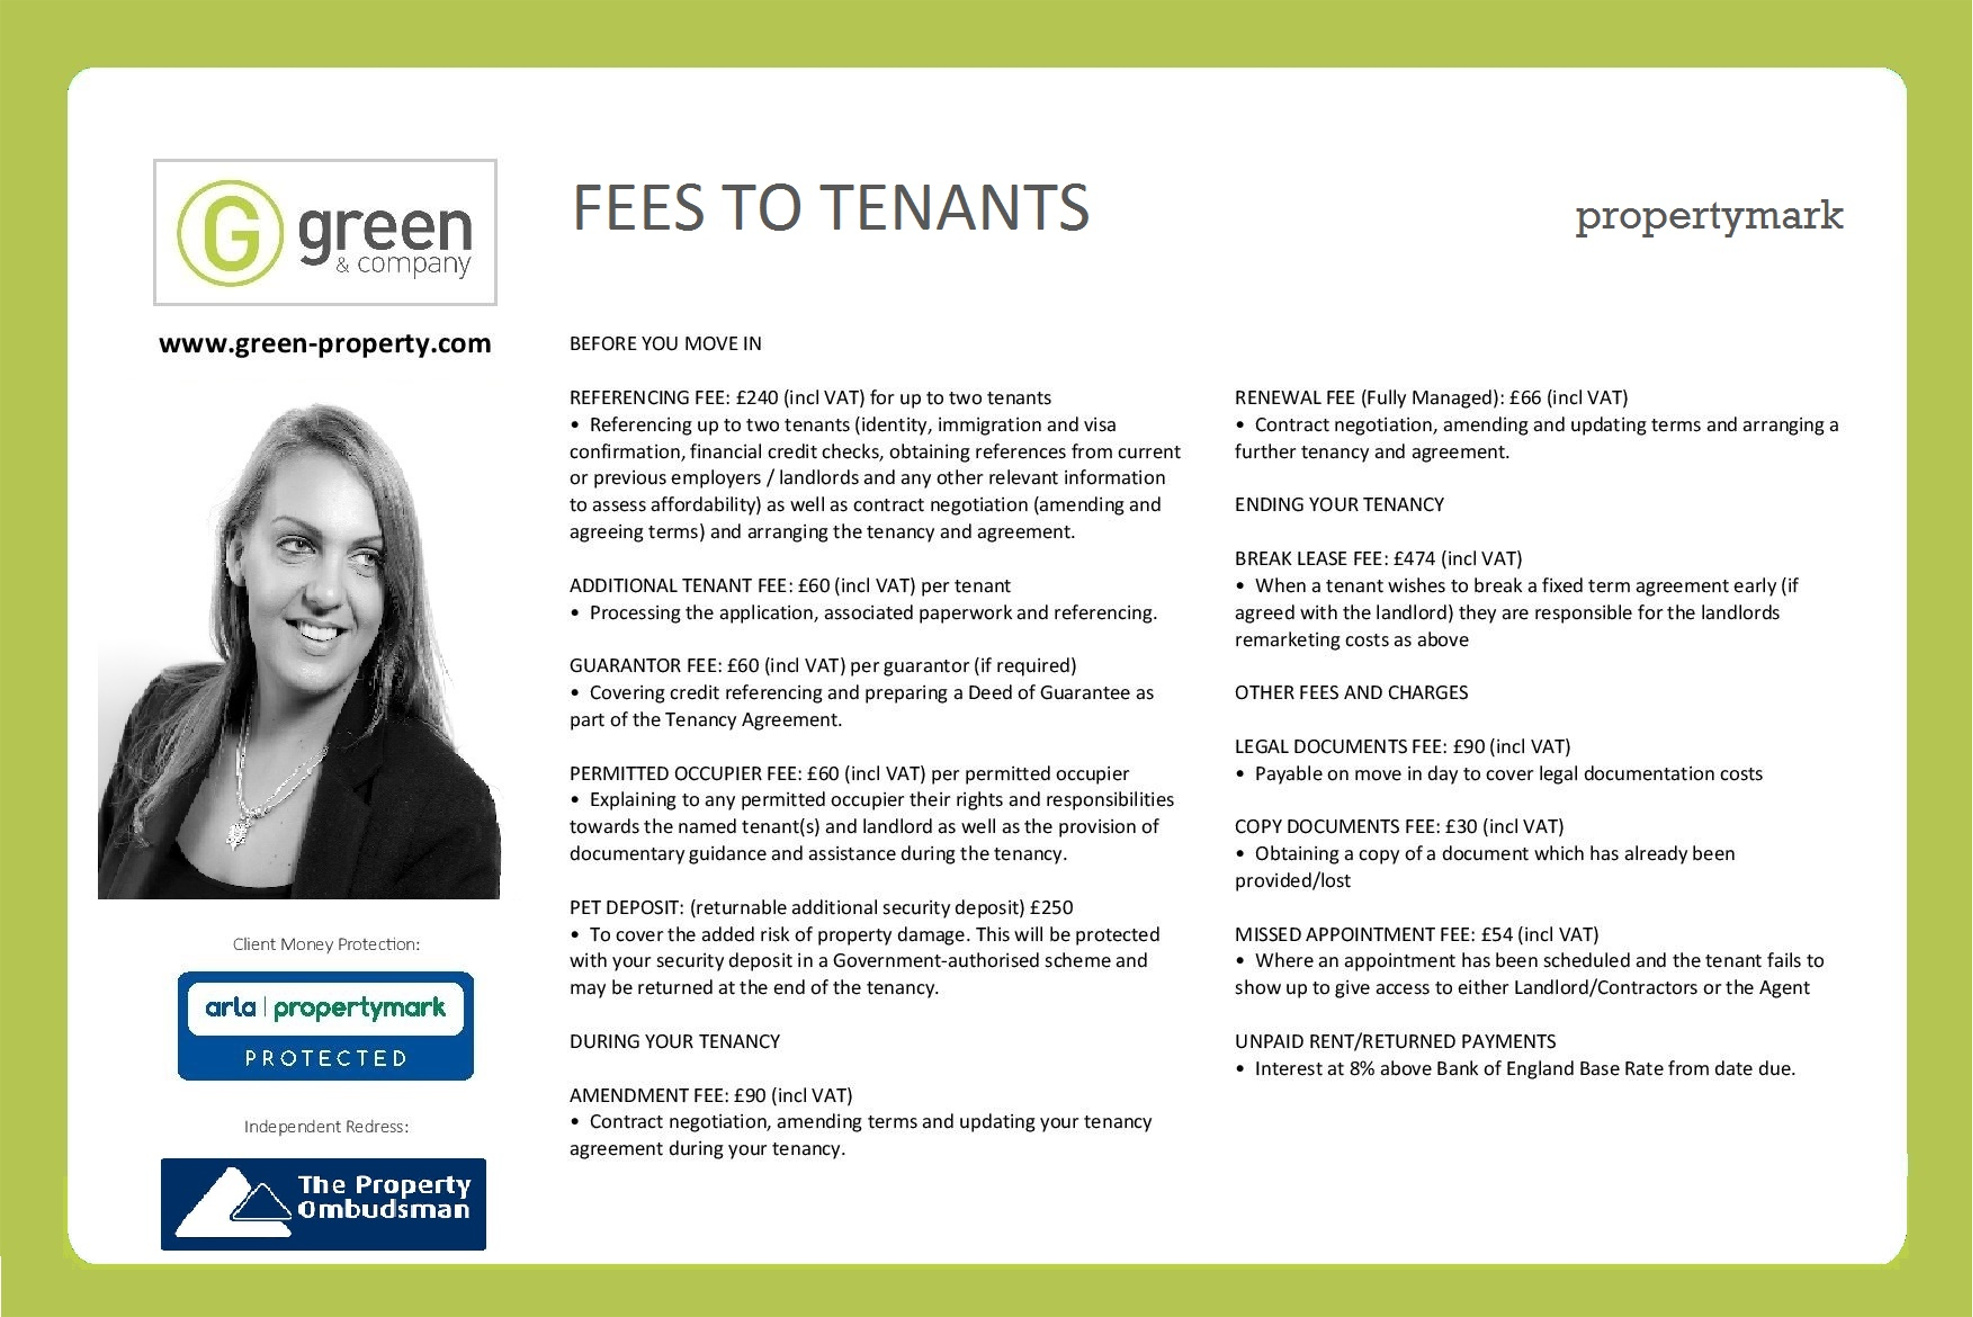 lettings fees